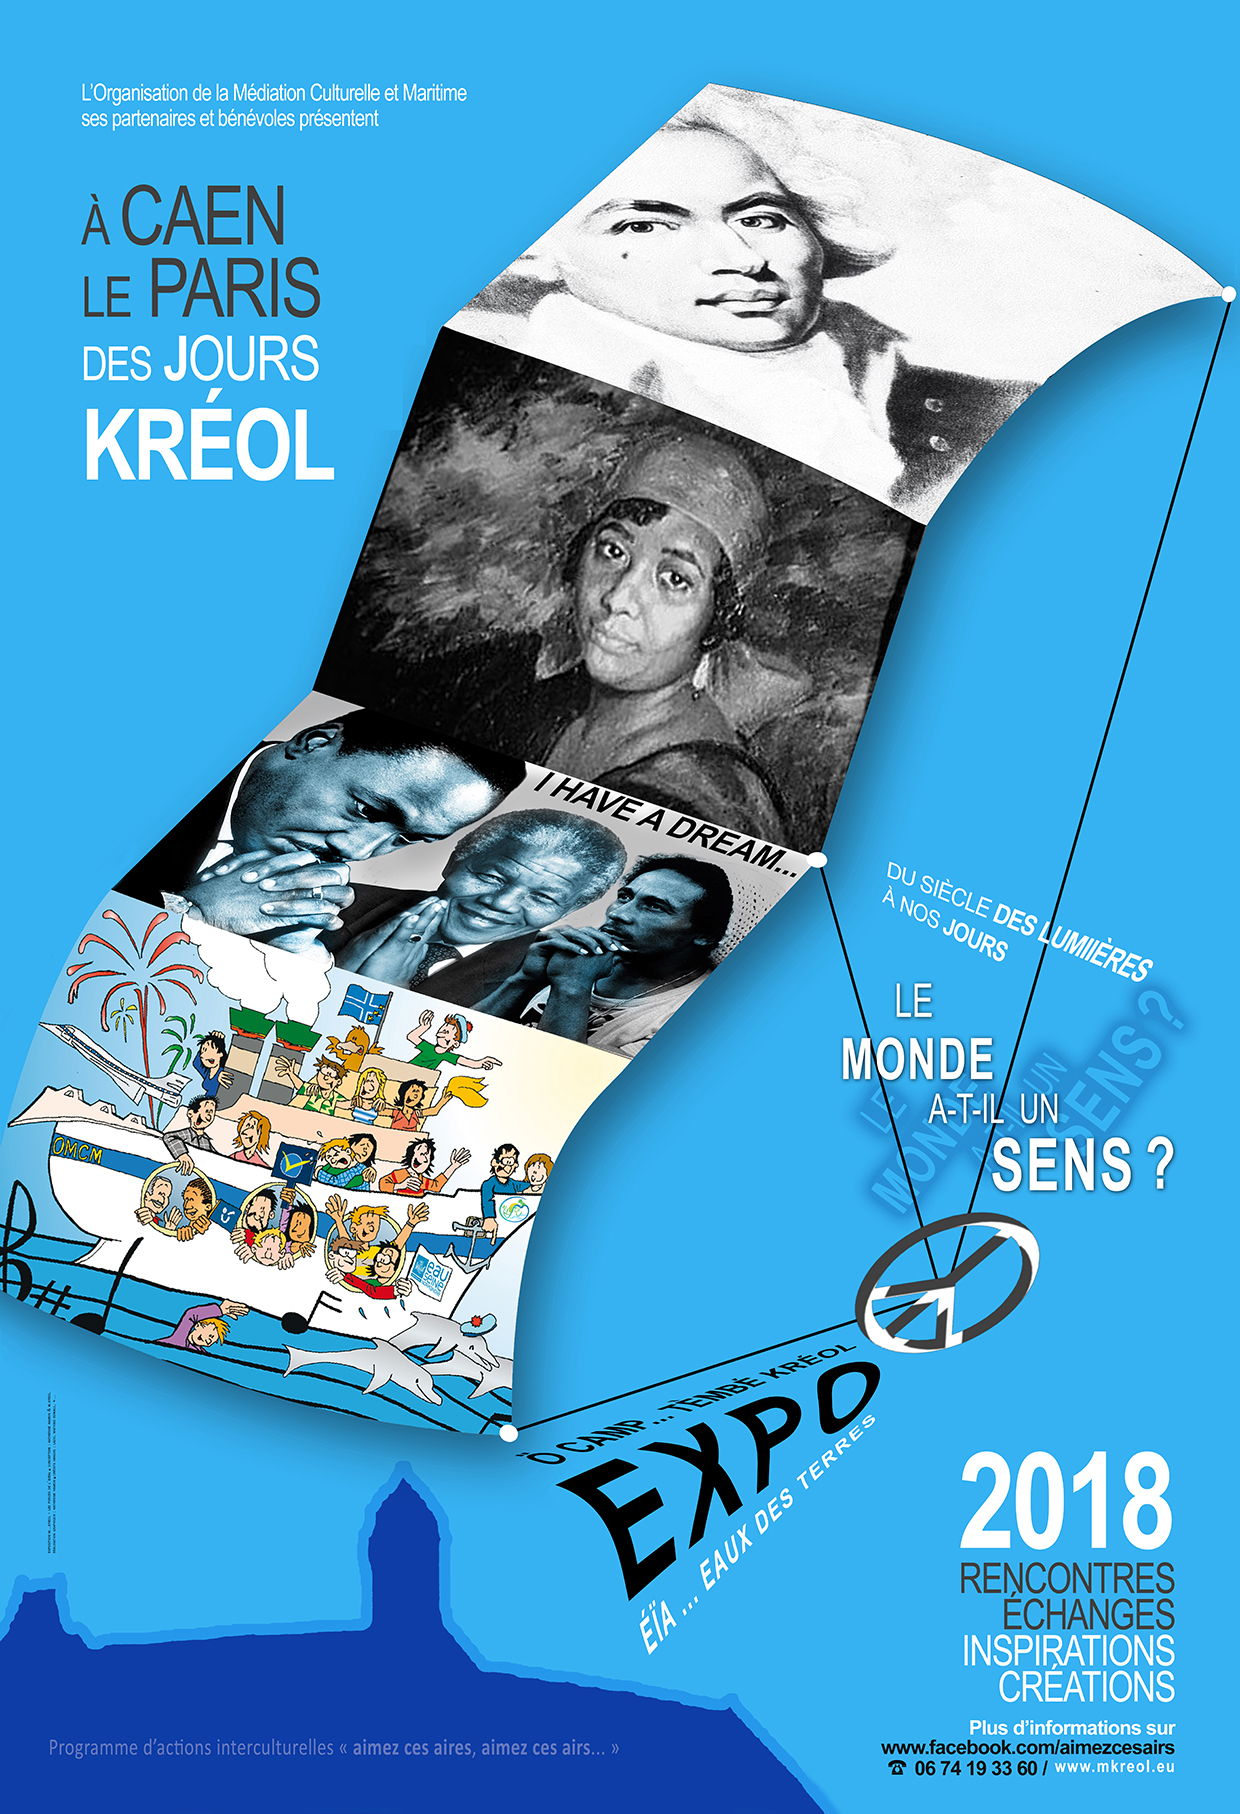 web-aff-mkreol-2018-ACPJours-Kreol-lumieres-aesn